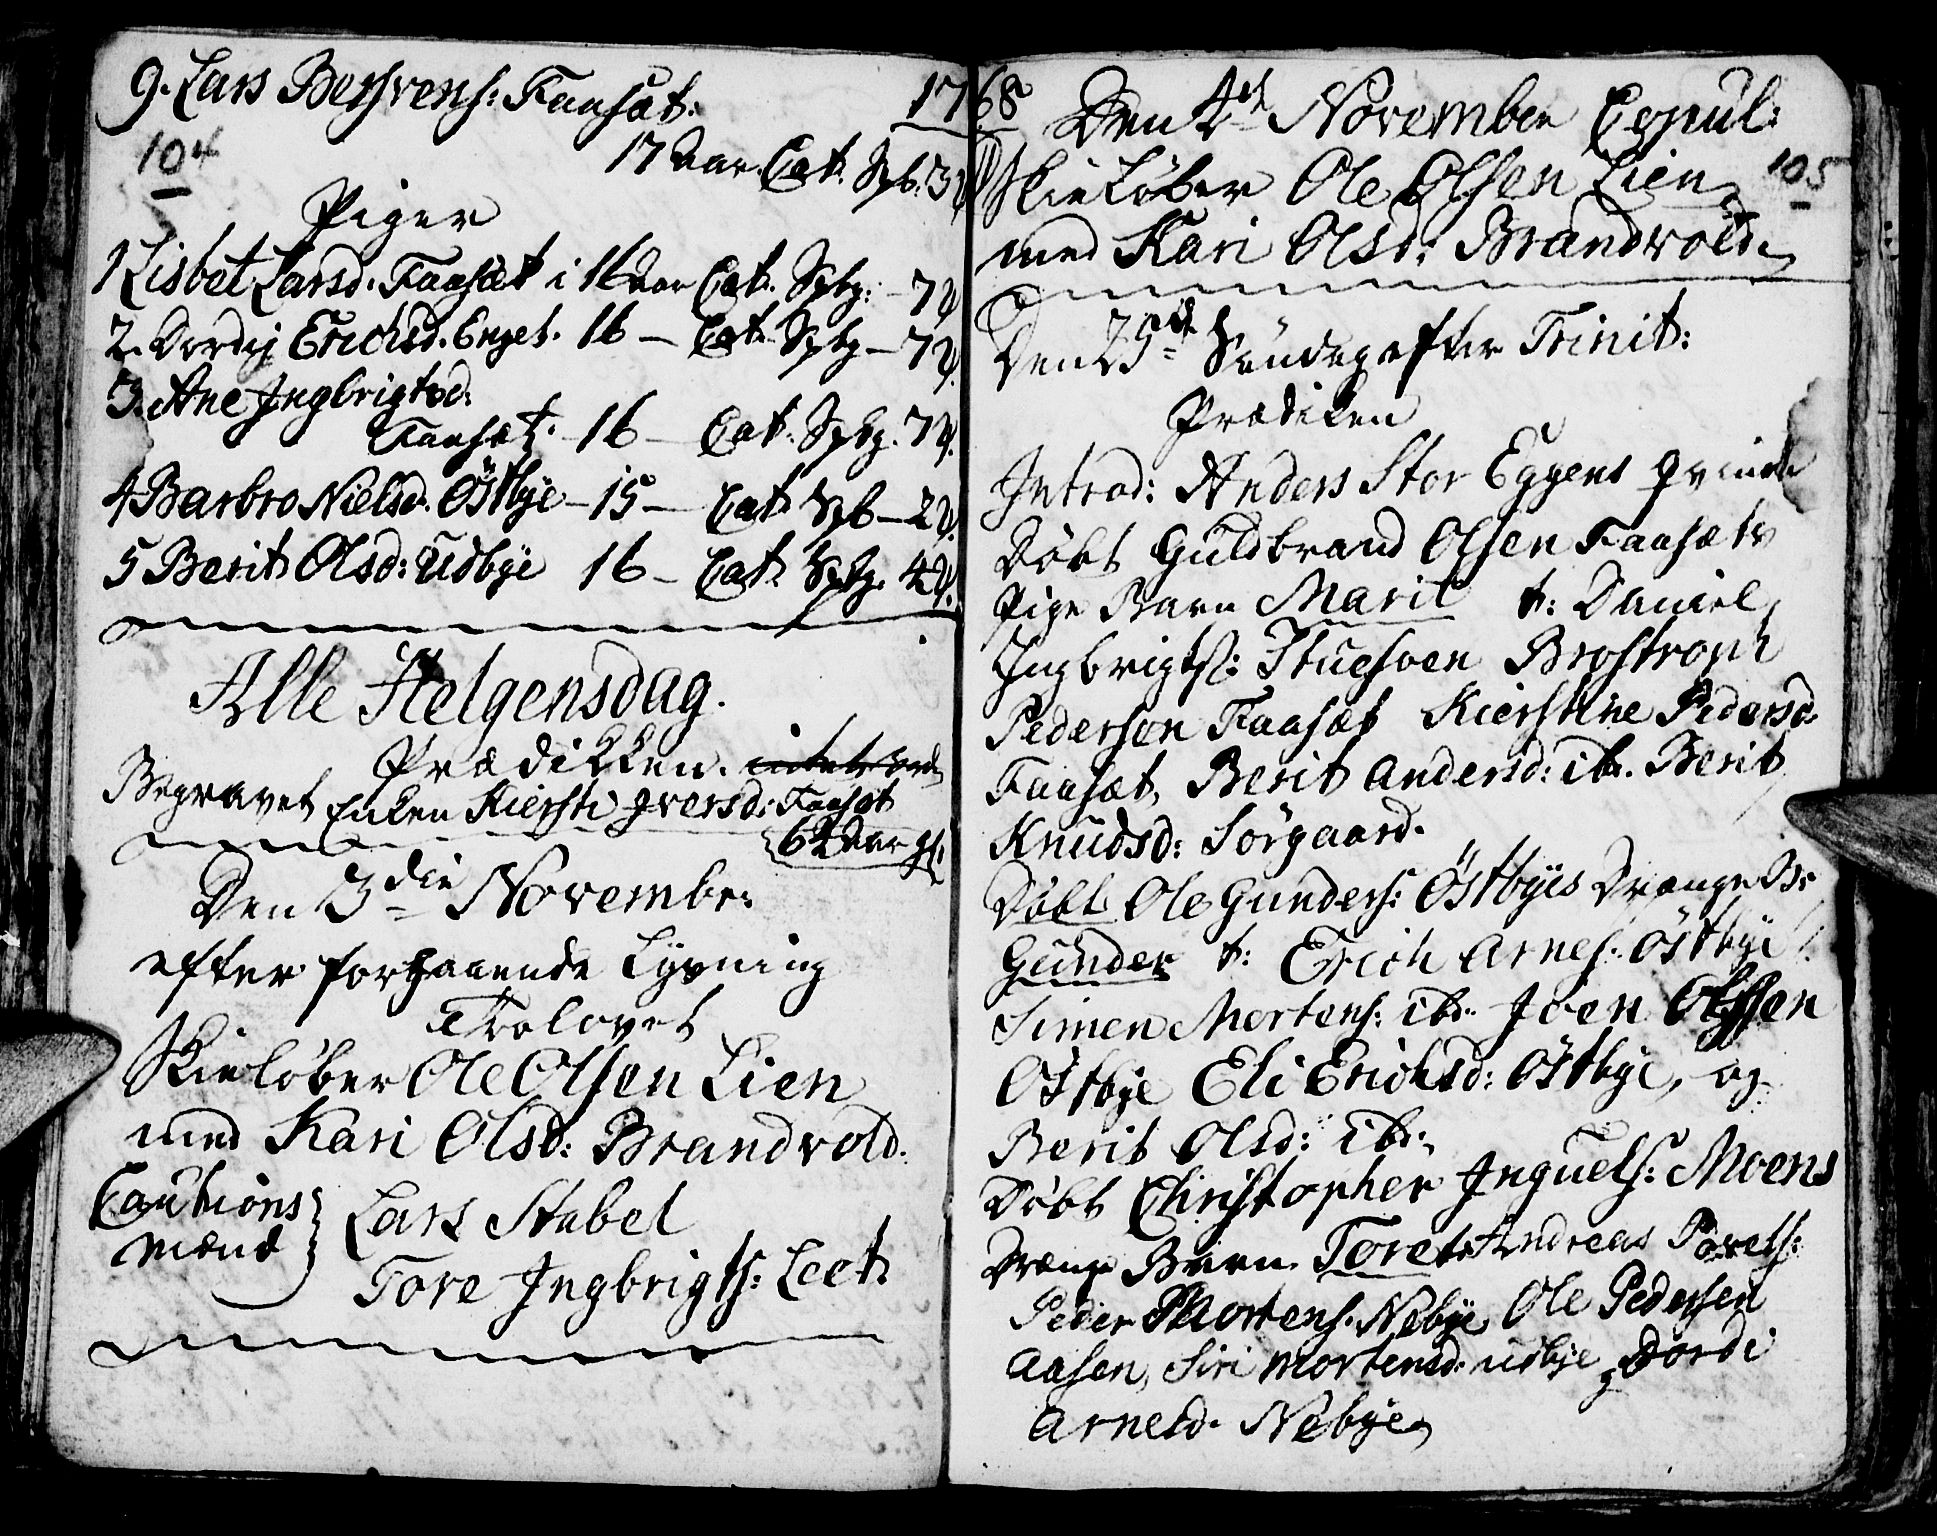 SAH, Tynset prestekontor, Parish register (official) no. 6, 1763-1779, p. 104-105